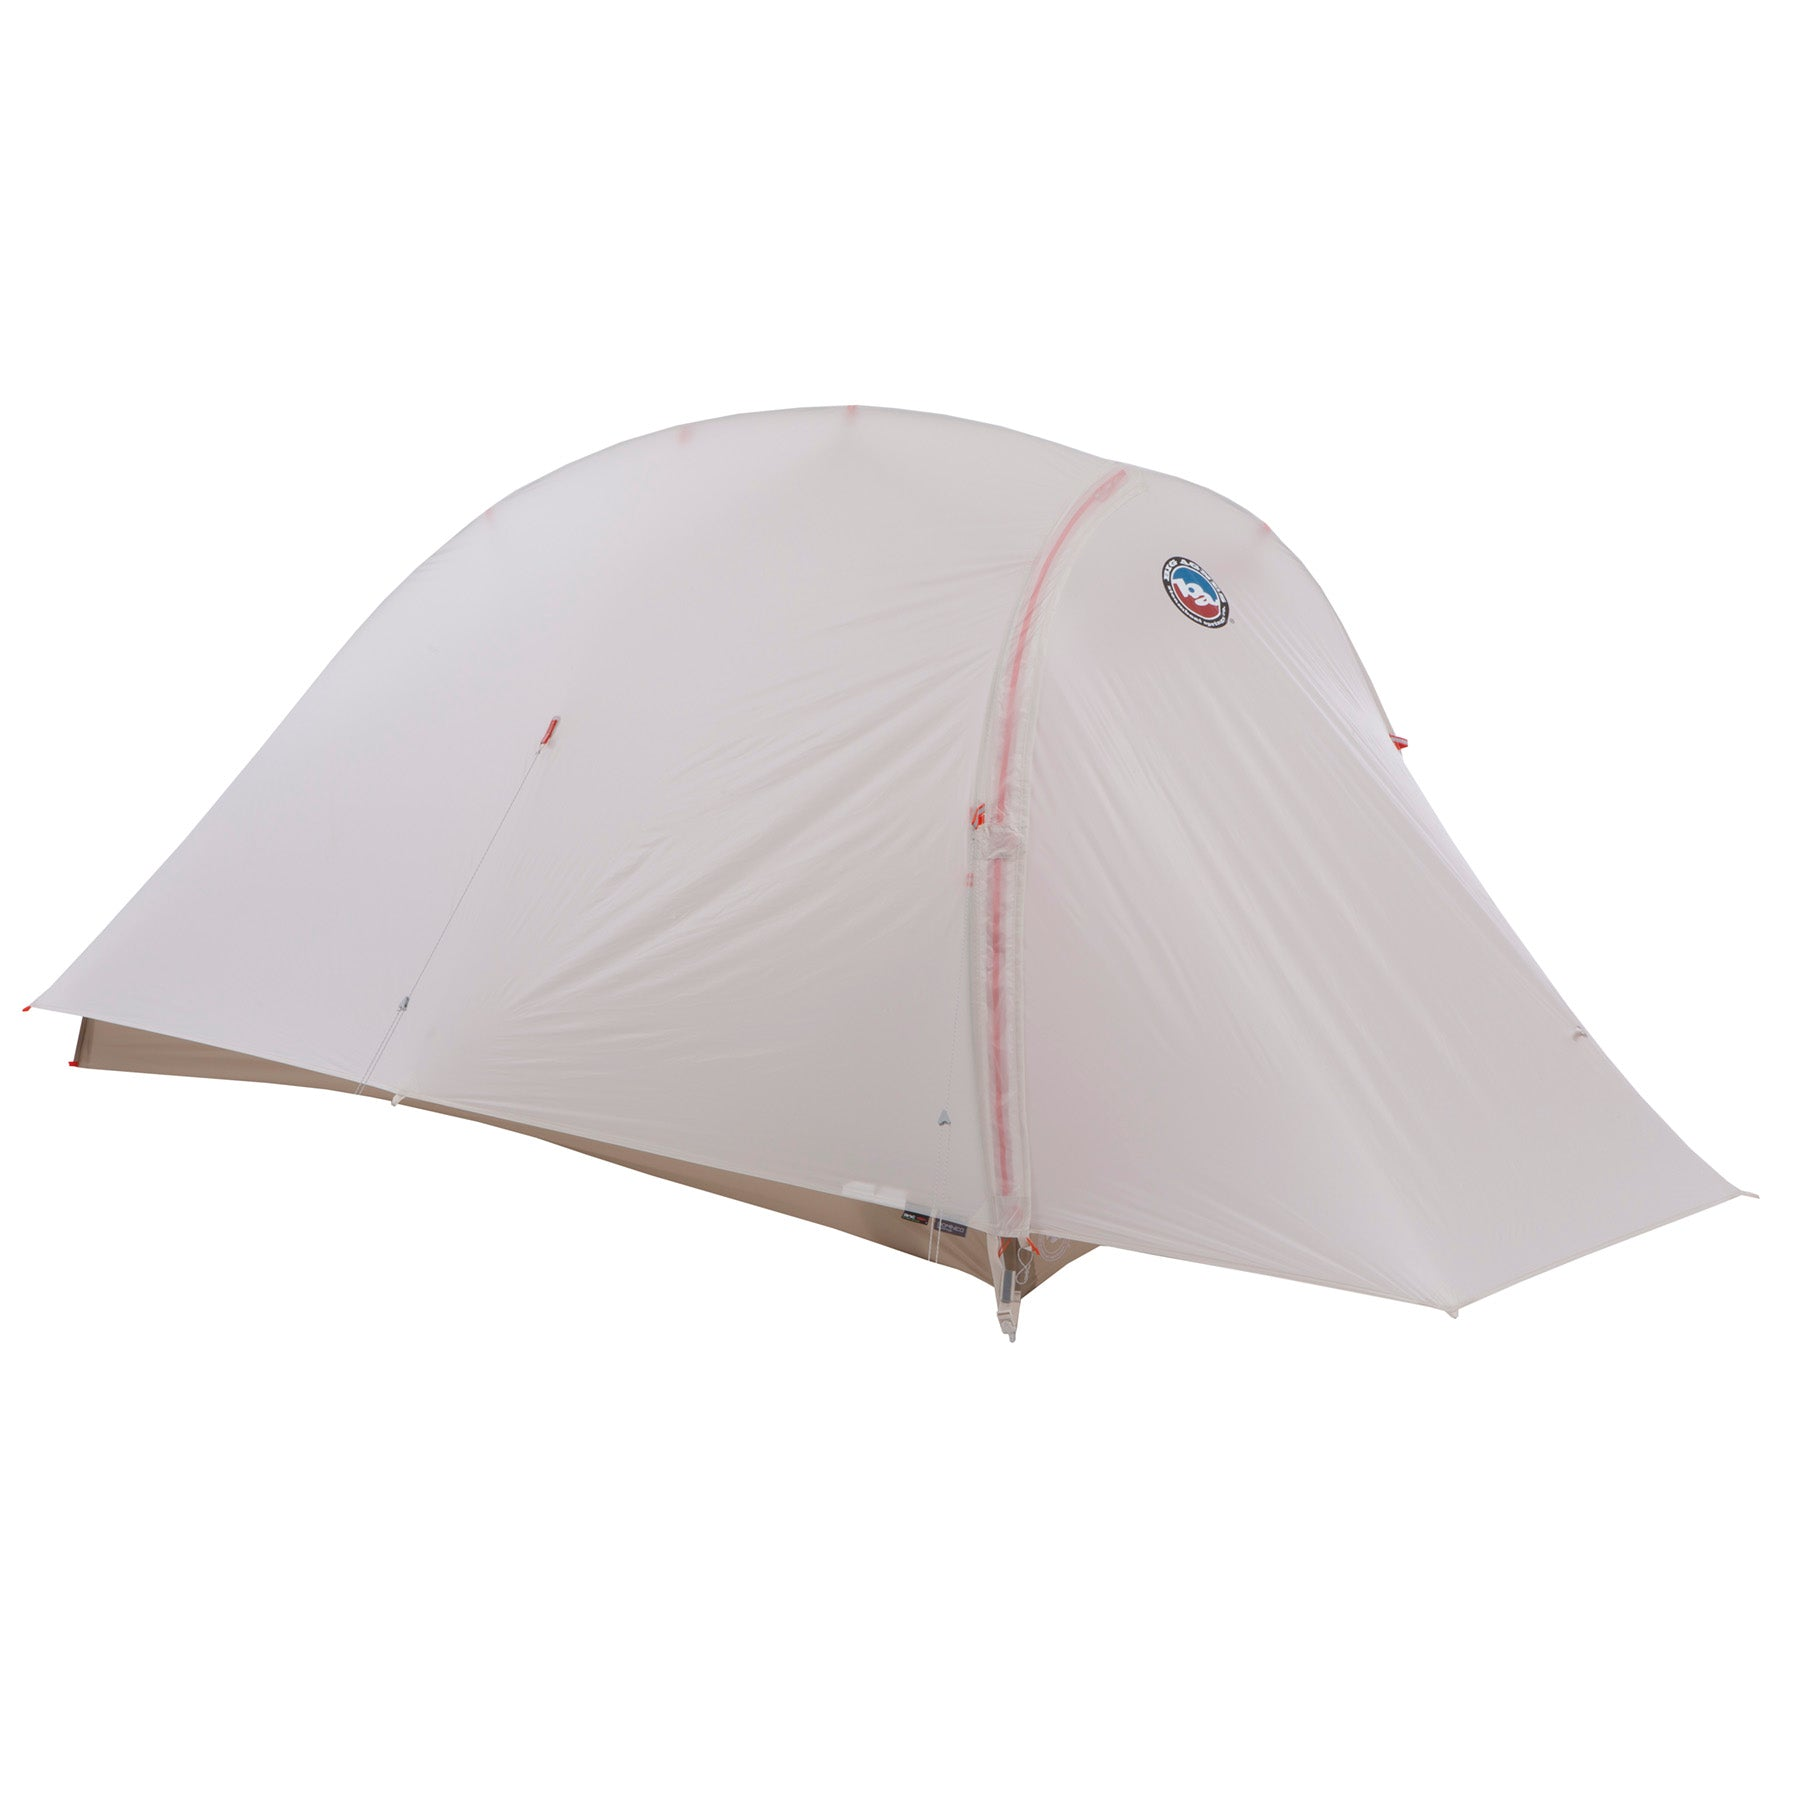 the big agnes fly creek HV UL 1 solution dye tent with fly on and door zipped